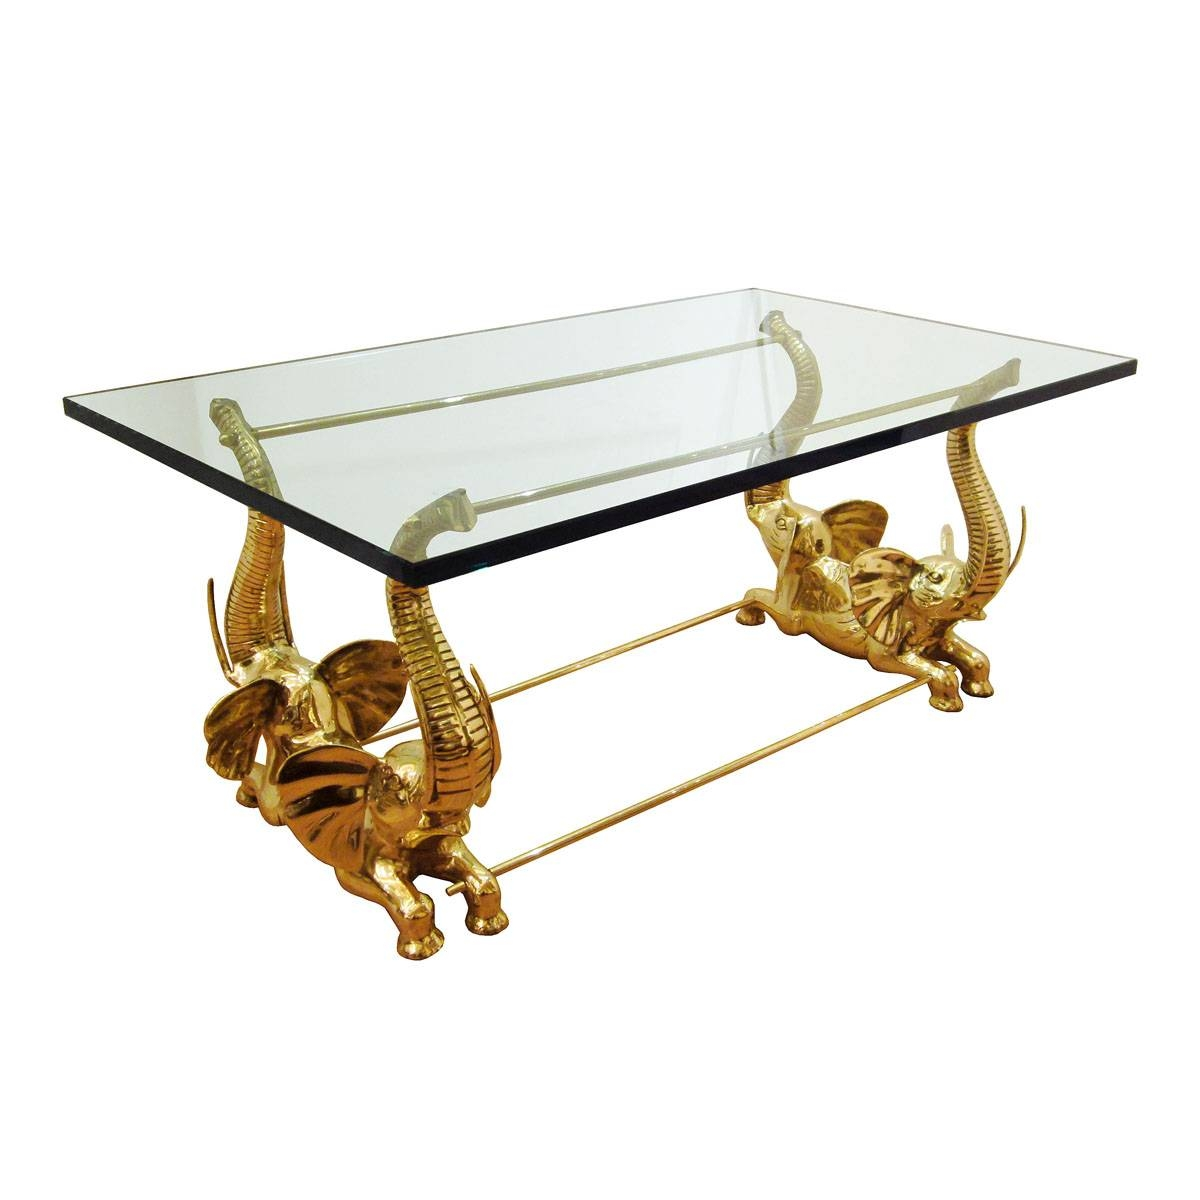 Brass Elephant Base Coffee Table | Coffee Tables | John Salibello with regard to Elephant Glass Coffee Tables (Image 7 of 30)